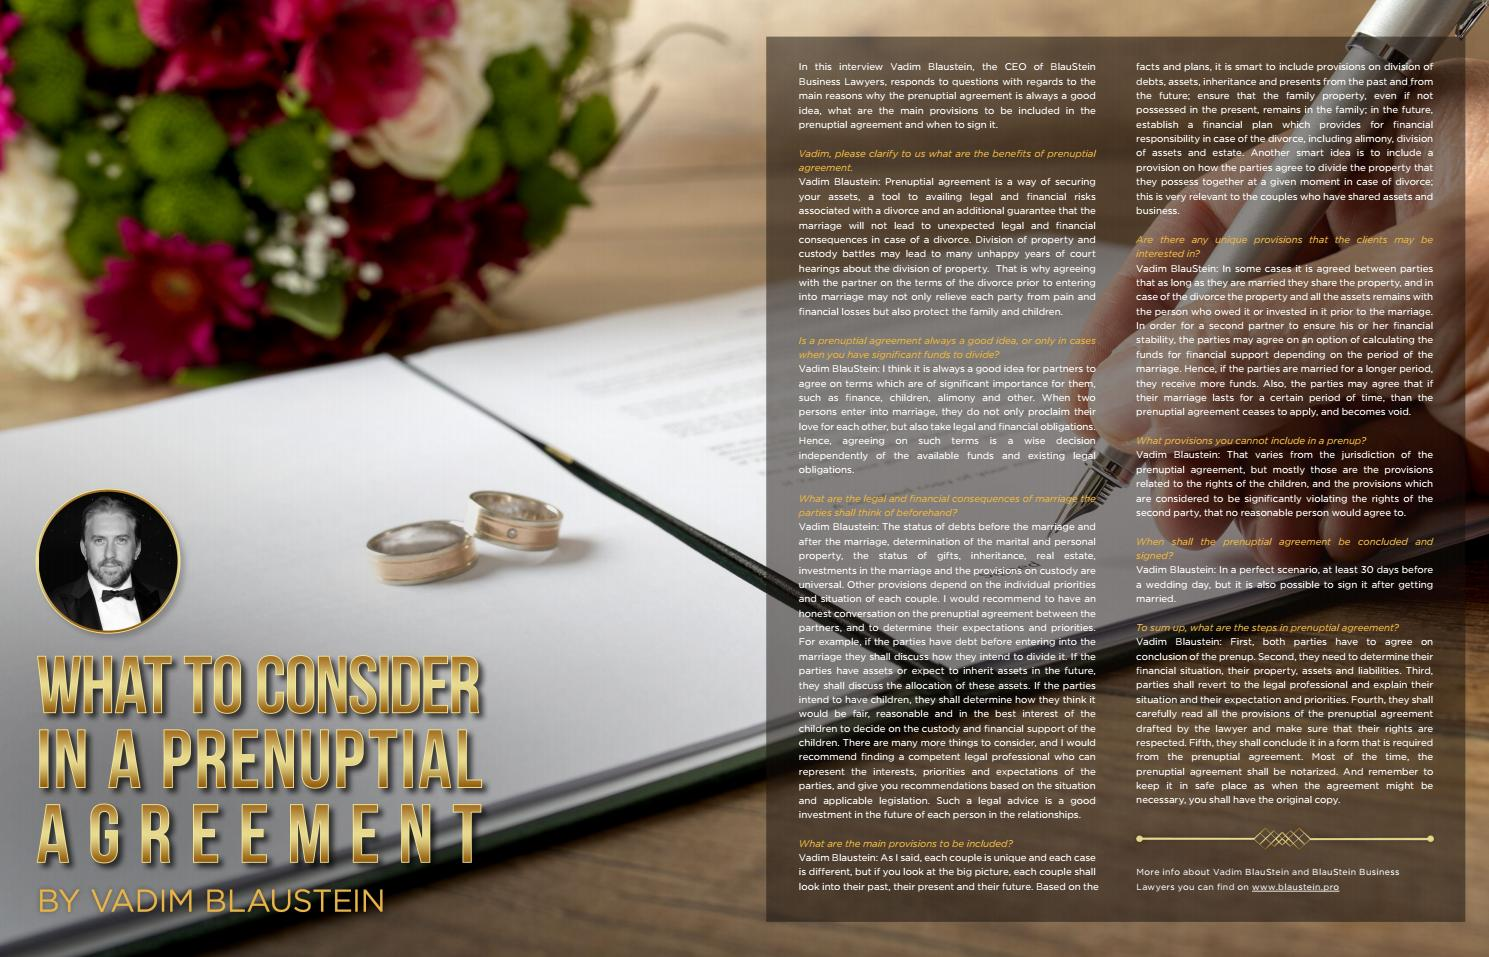 Vadim Blaustein On What To Consider In A Prenuptial Agreement By